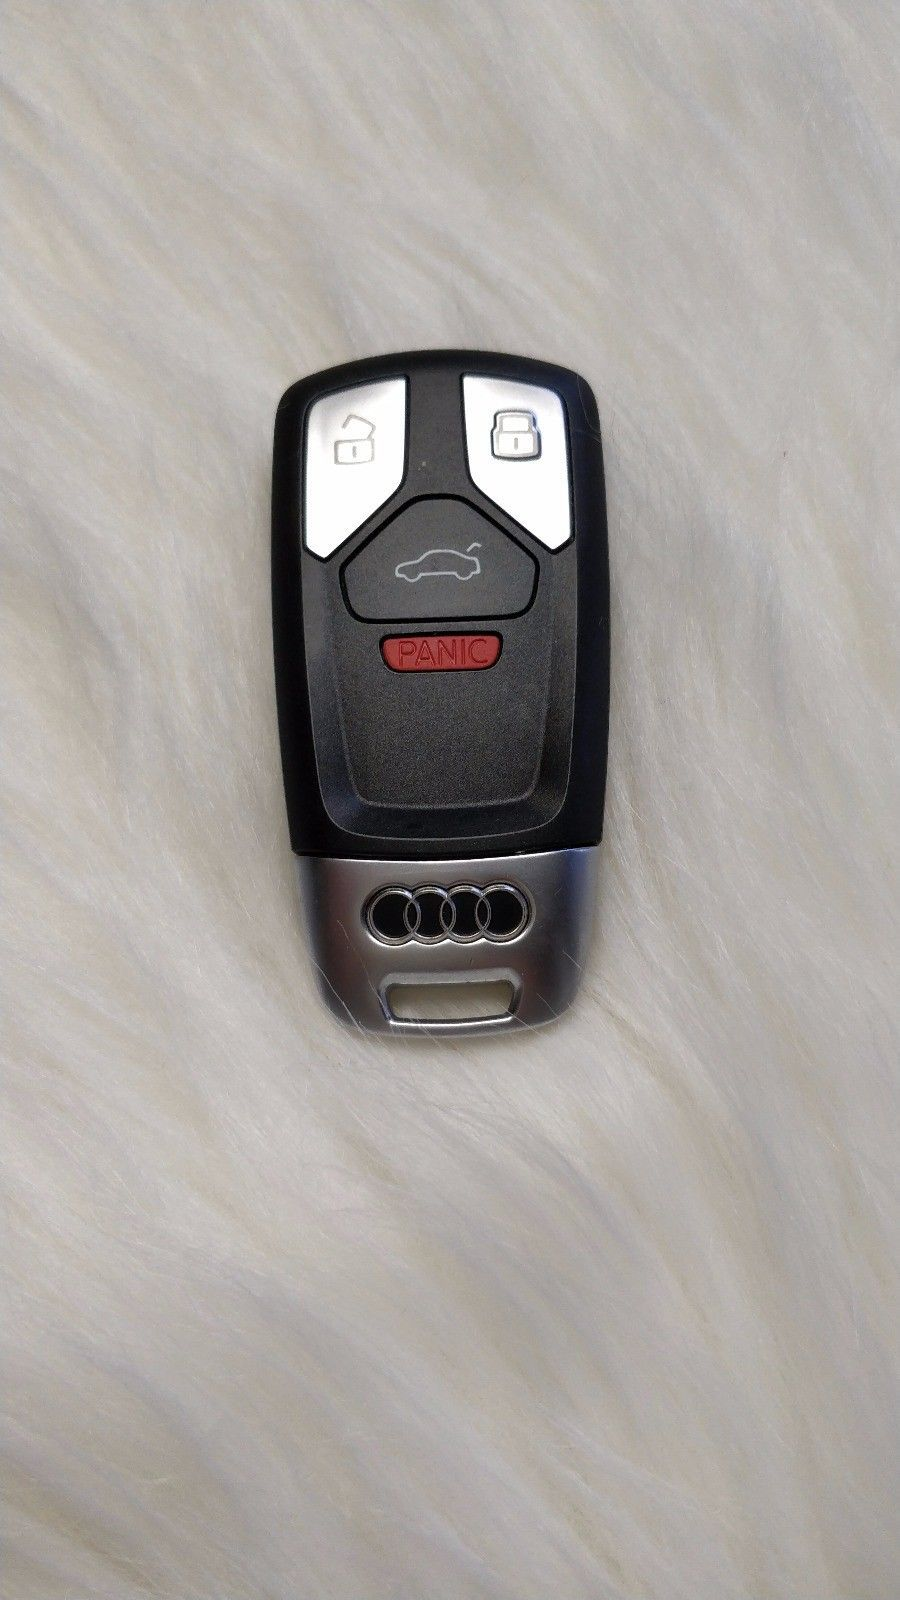 Awesome Great Audi Key Fob 2016 A4 A6 A3 S4 S6 S3 2018 Check